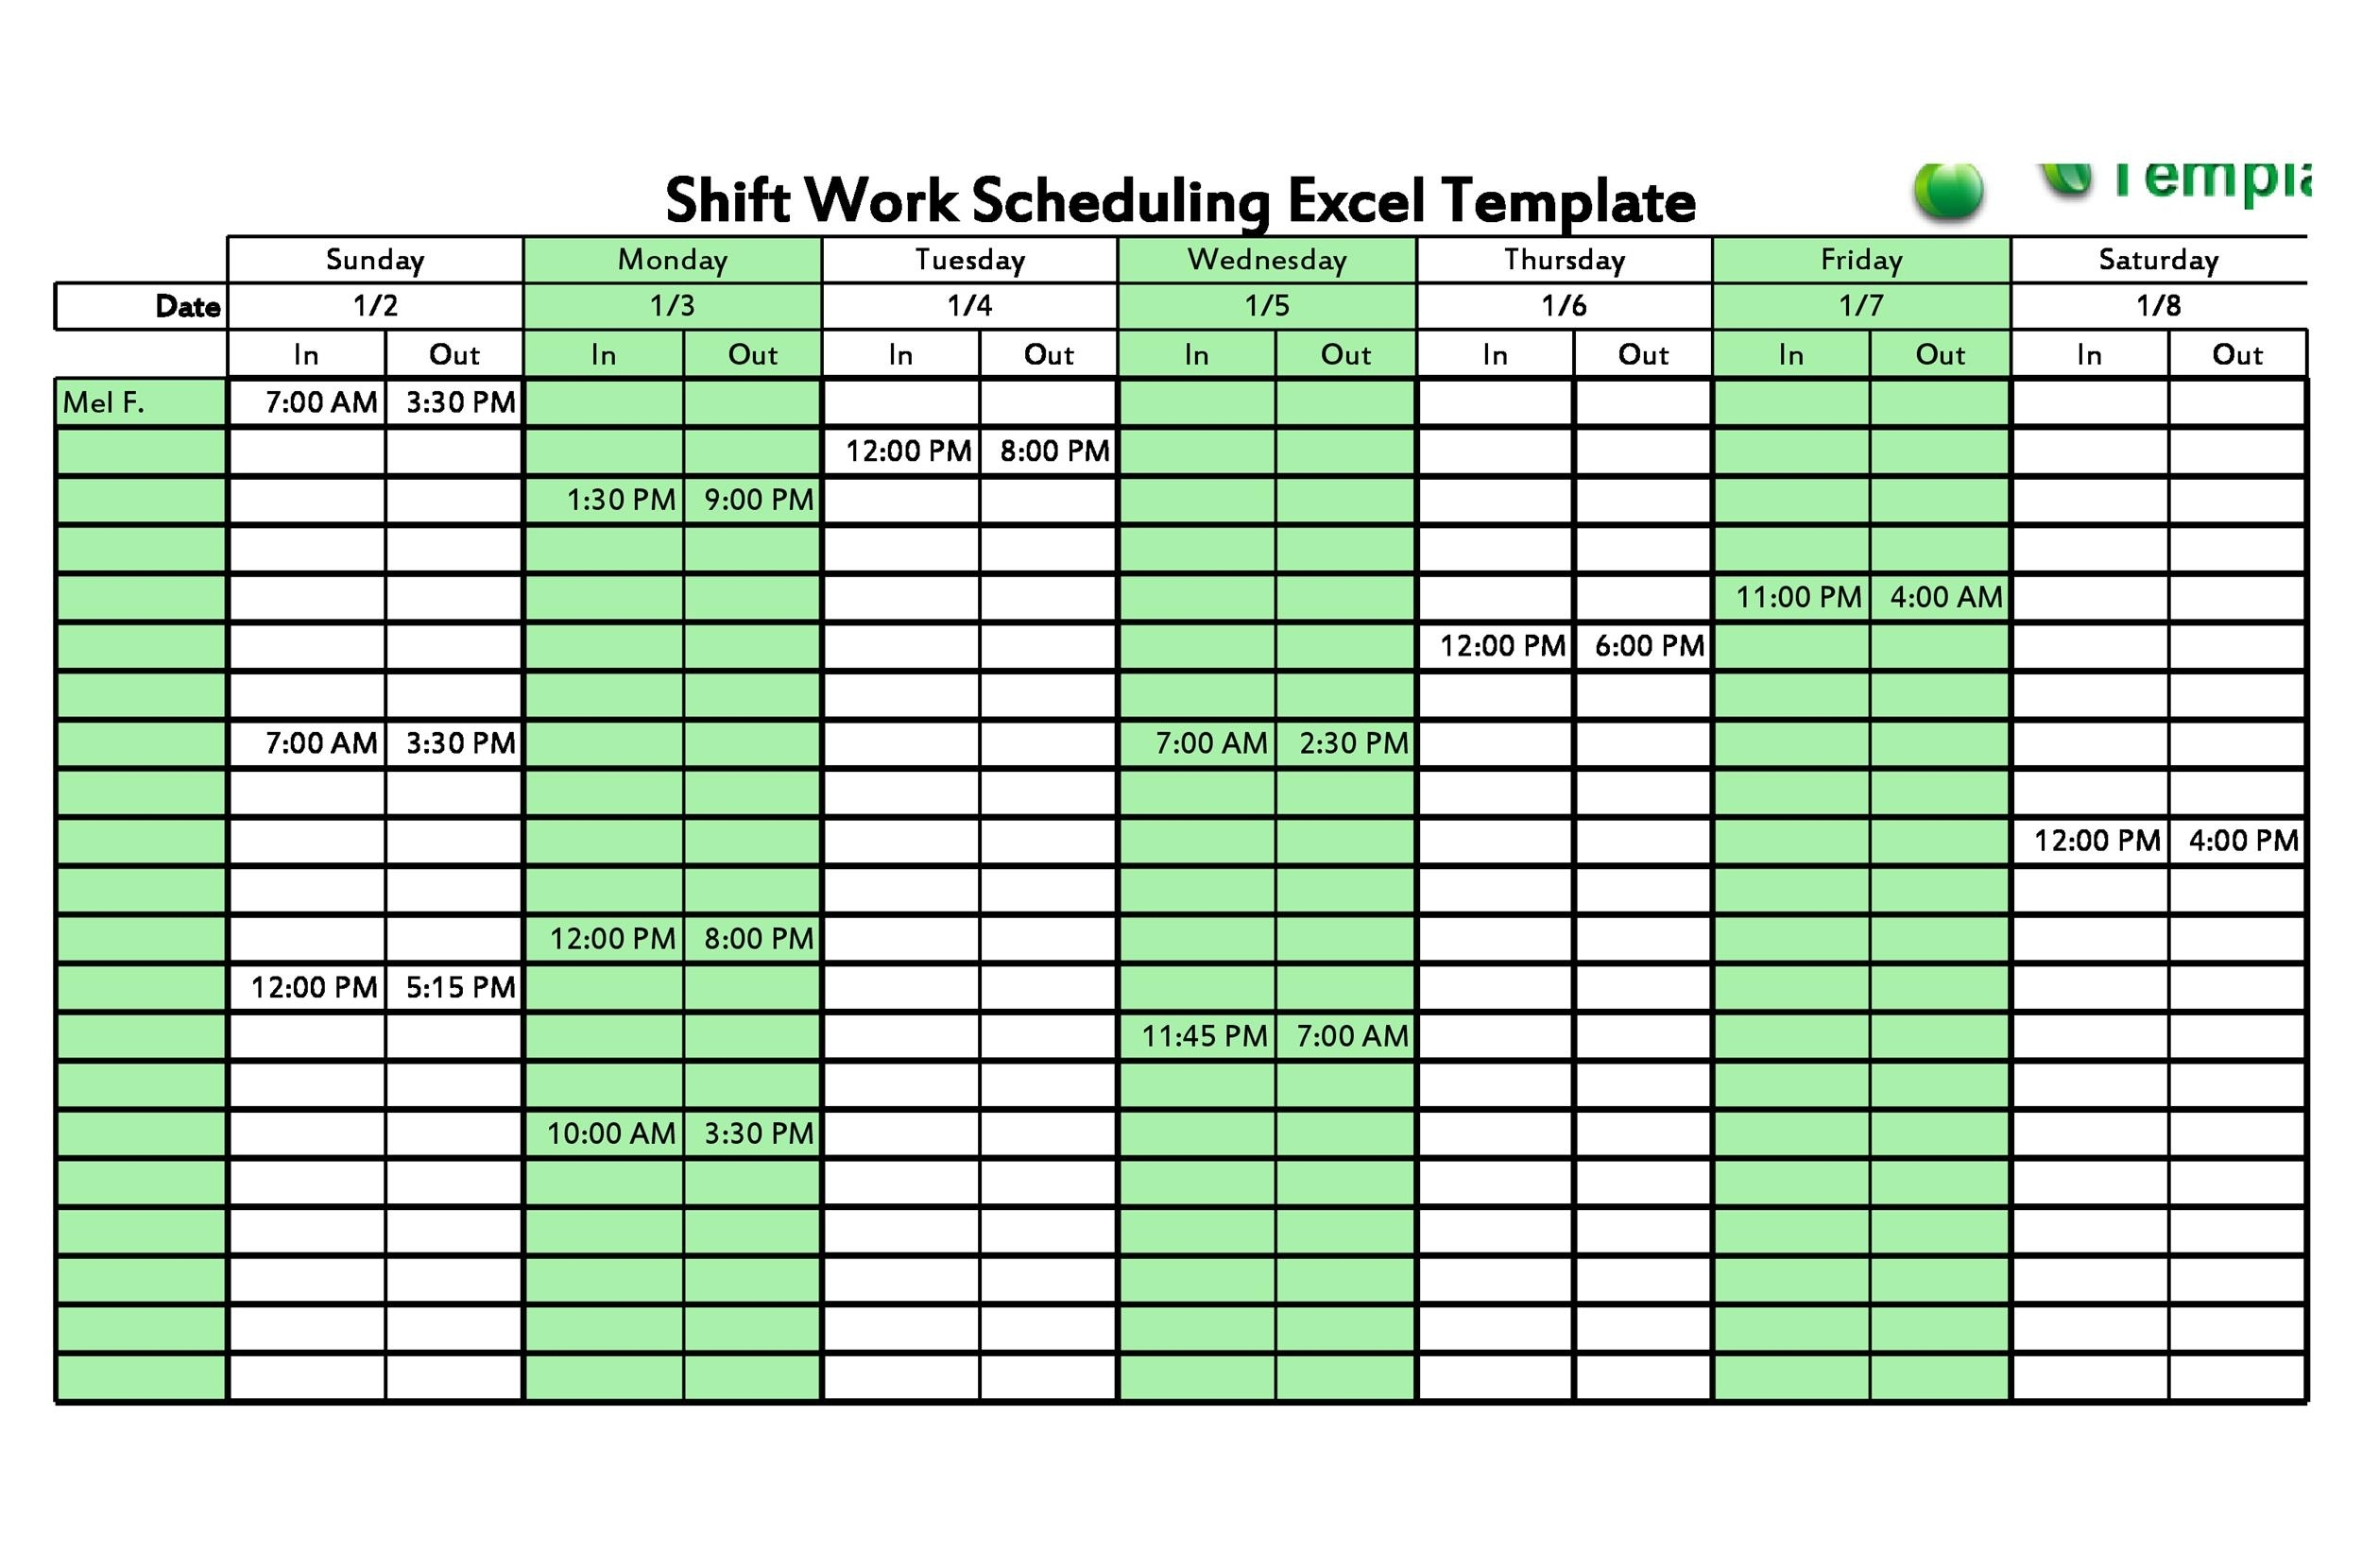 14 Dupont Shift Schedule Templats For Any Company [Free] ᐅ in 12 Hour Shift Calendar Templates